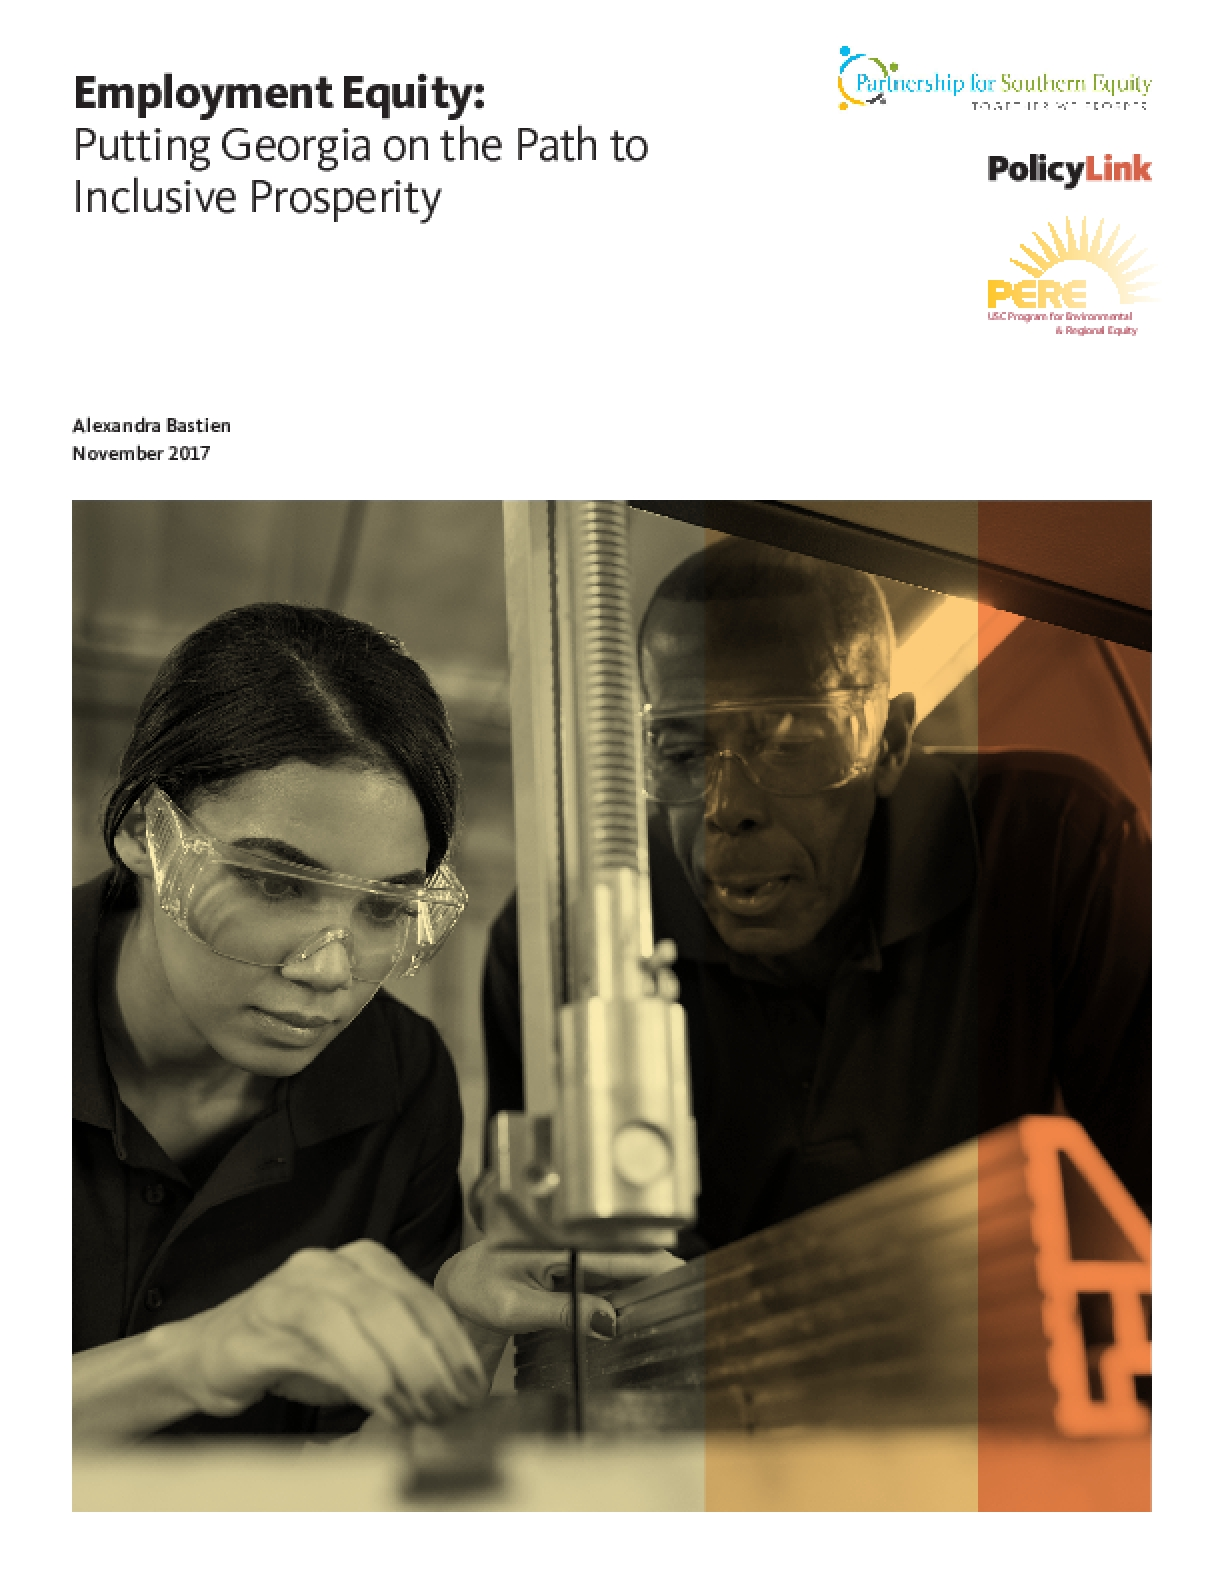 Employment Equity: Putting Georgia on the Path to Inclusive Prosperity